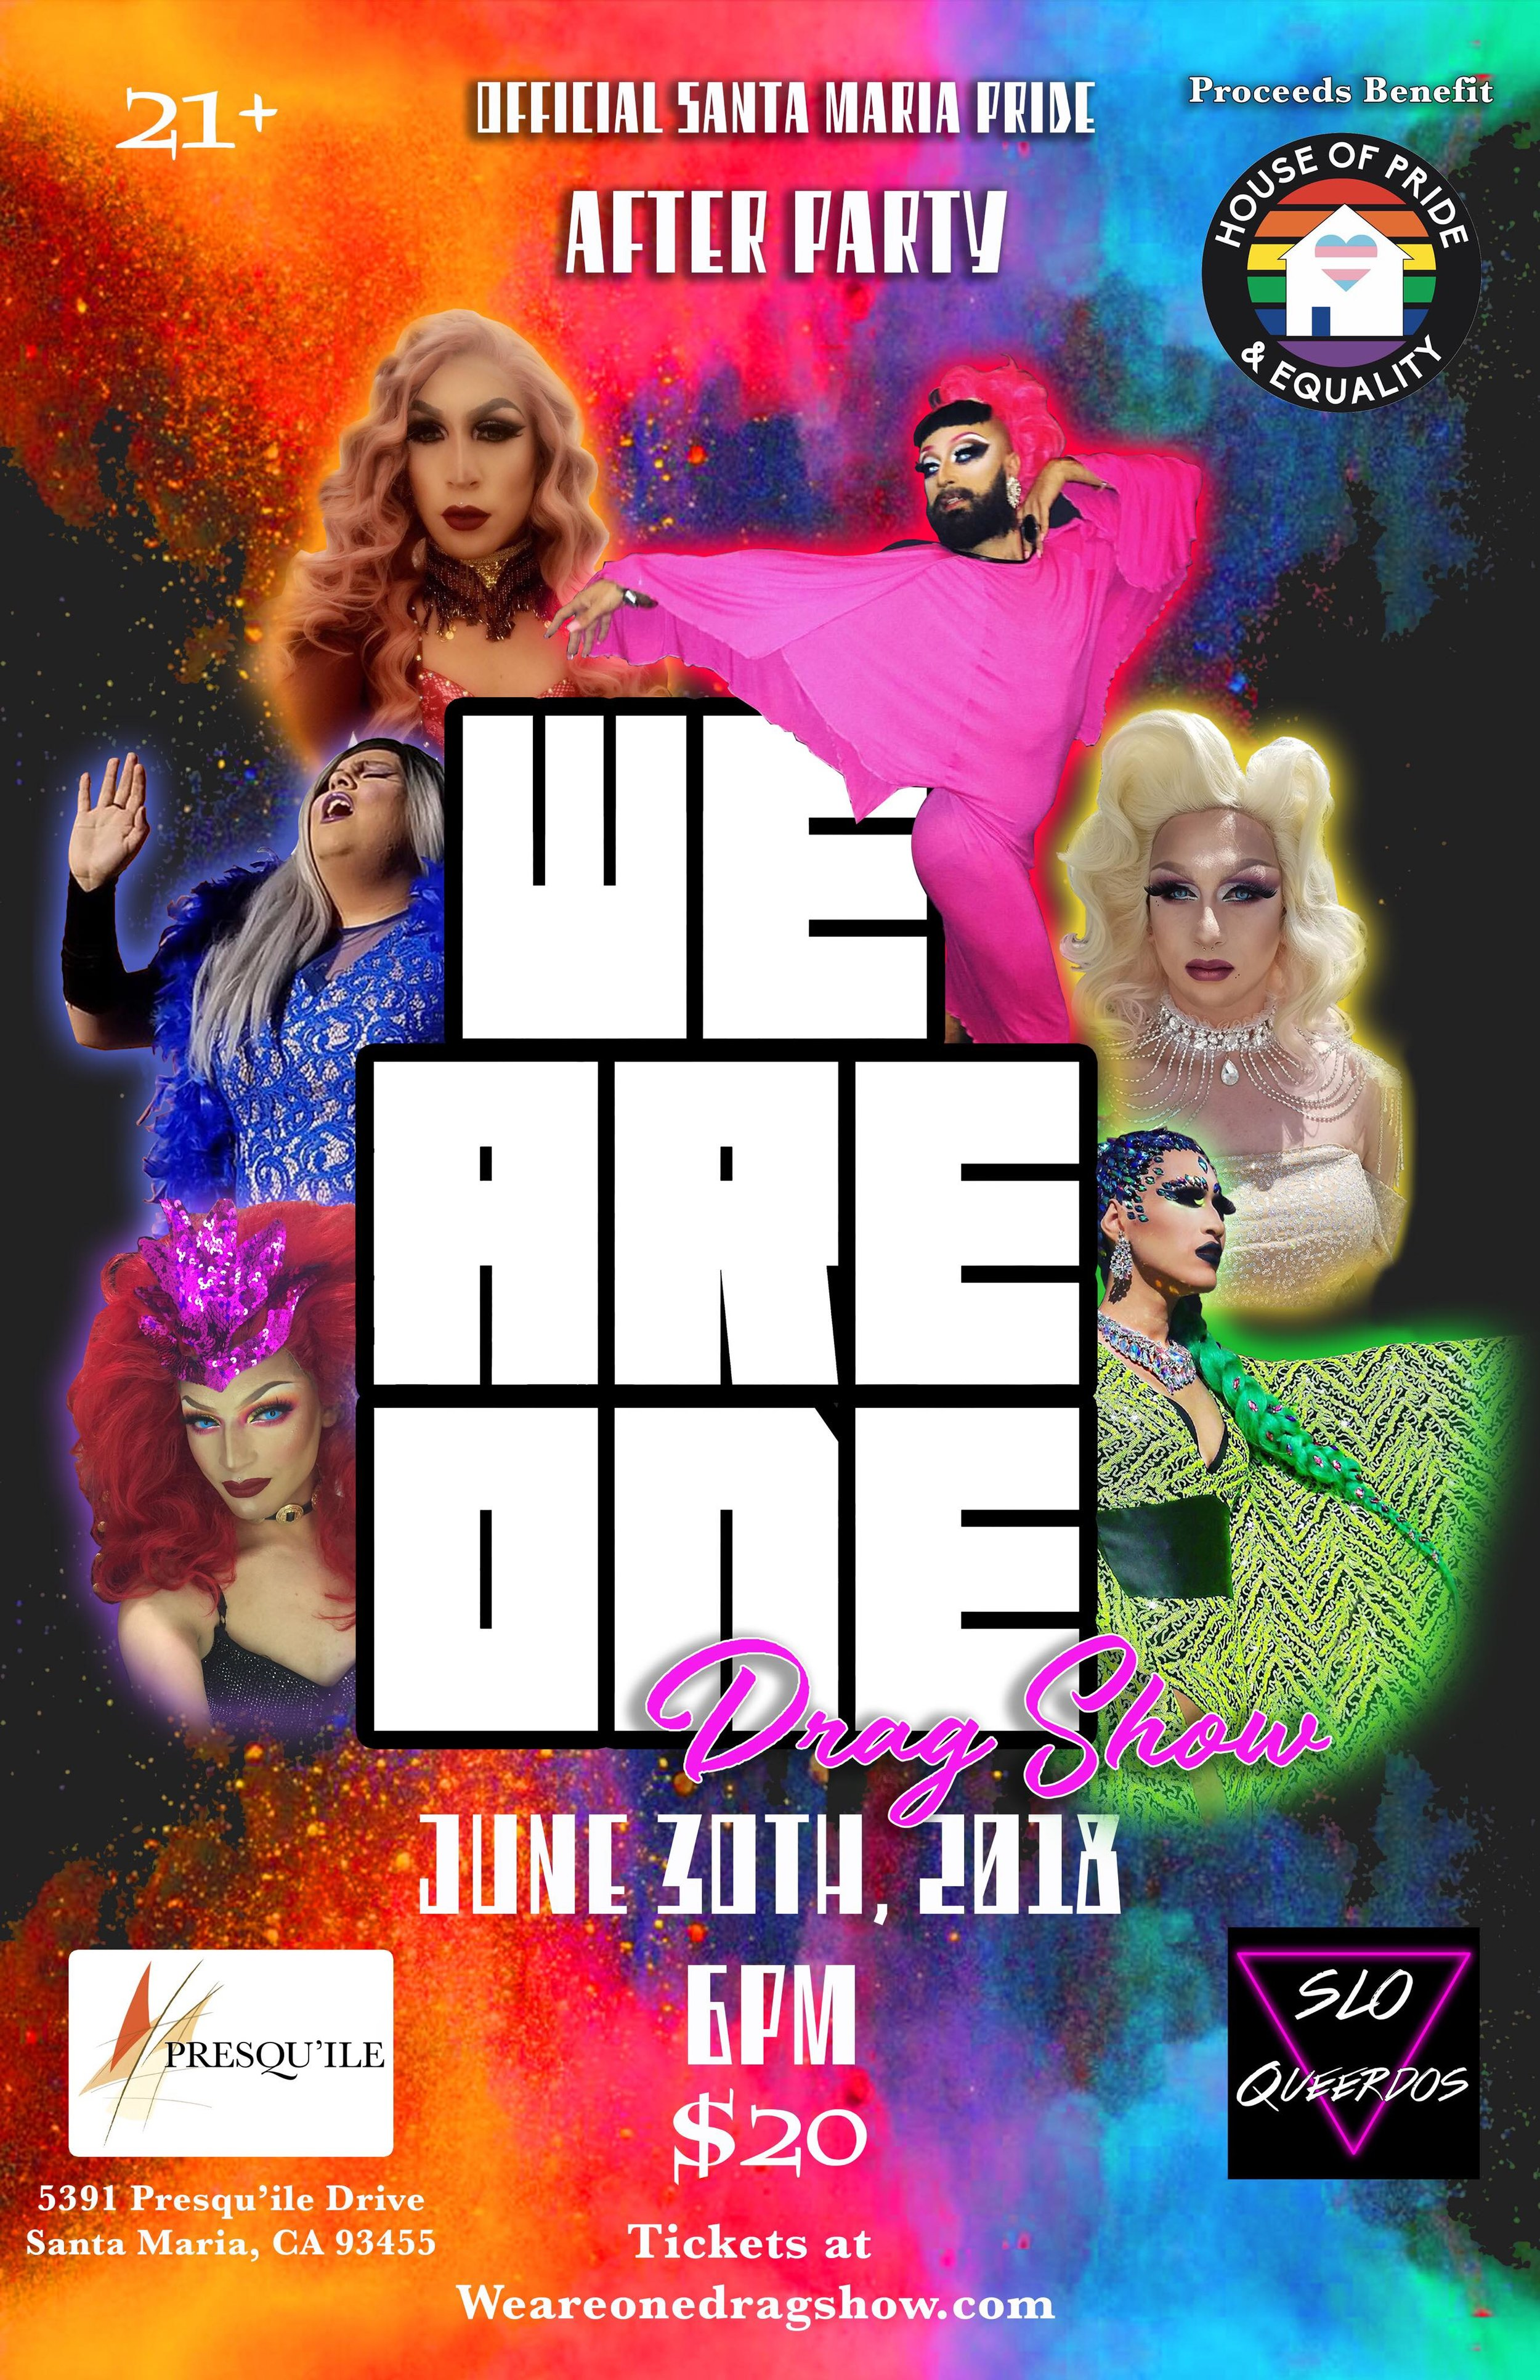 WE ARE ONE - Hosted by: Miss Central Coast 2017: Rubi!Performances by:Lulu Licious, Luxe Trapp, Santanico, Victoria, Nola Diamond, Will Pleaser, Santa Maria, Ultra Violet, and Grace Towers